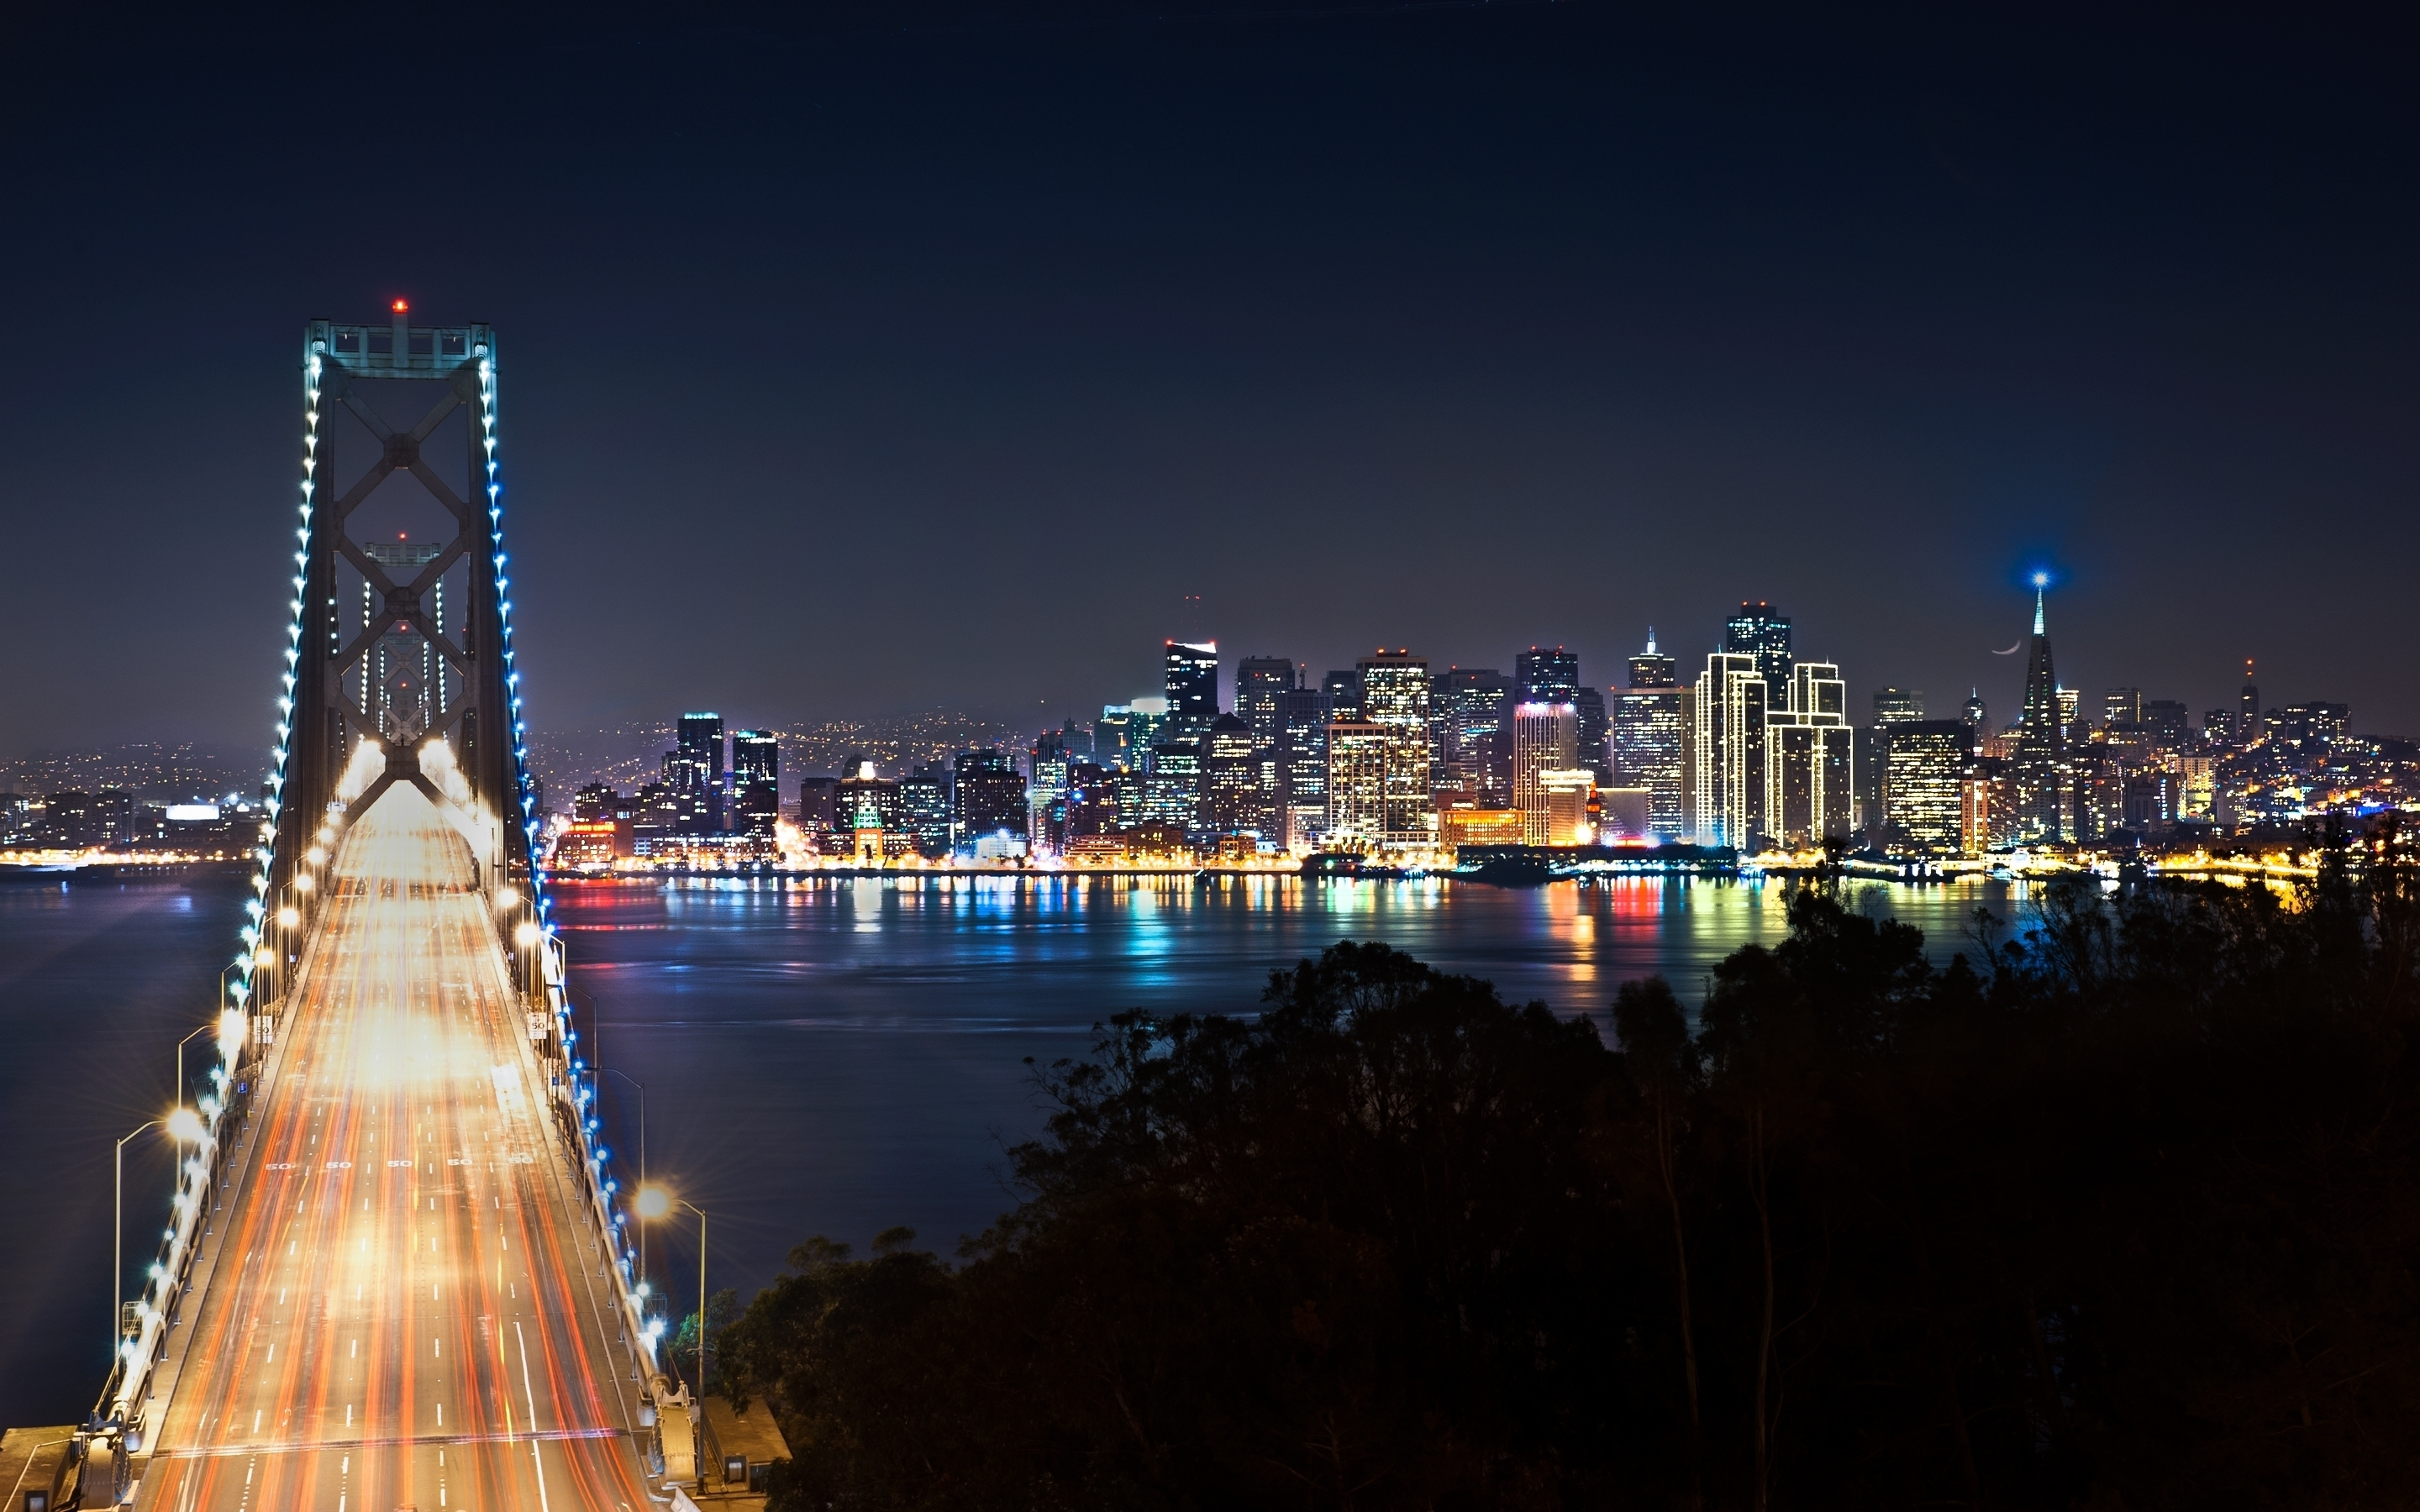 San Francisco at Night 21914 wallpaper